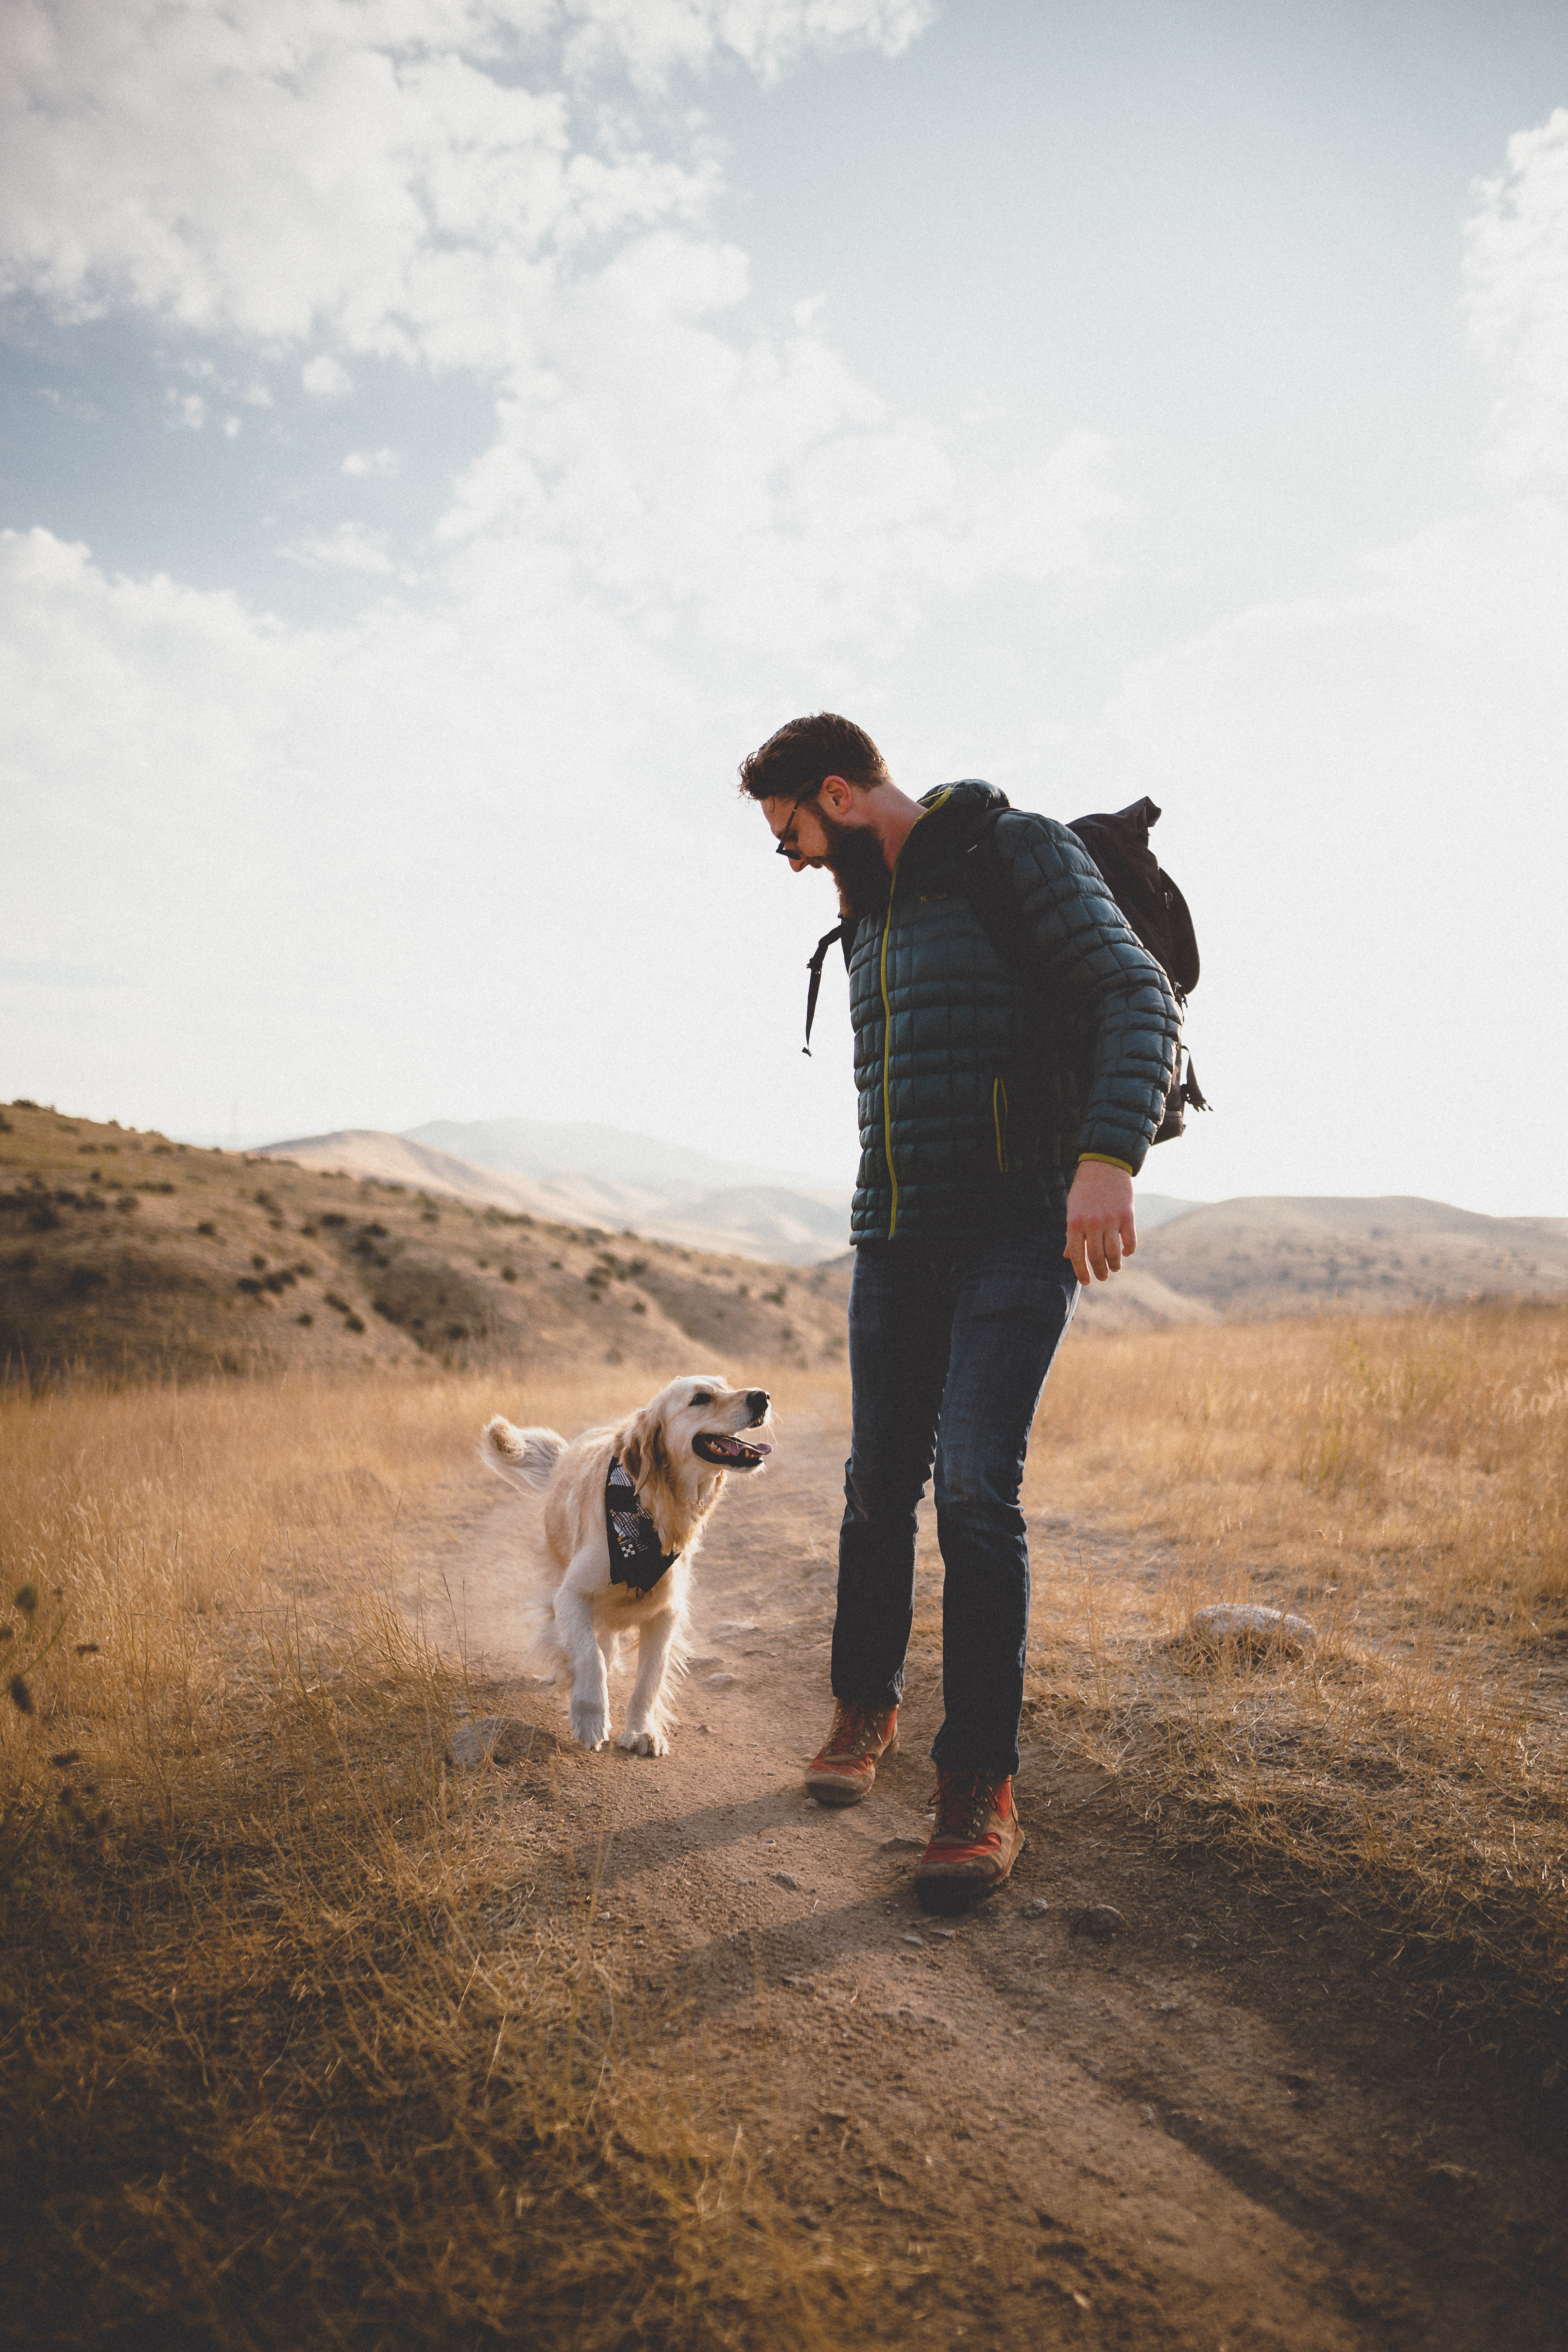 man and dog walking on trail.